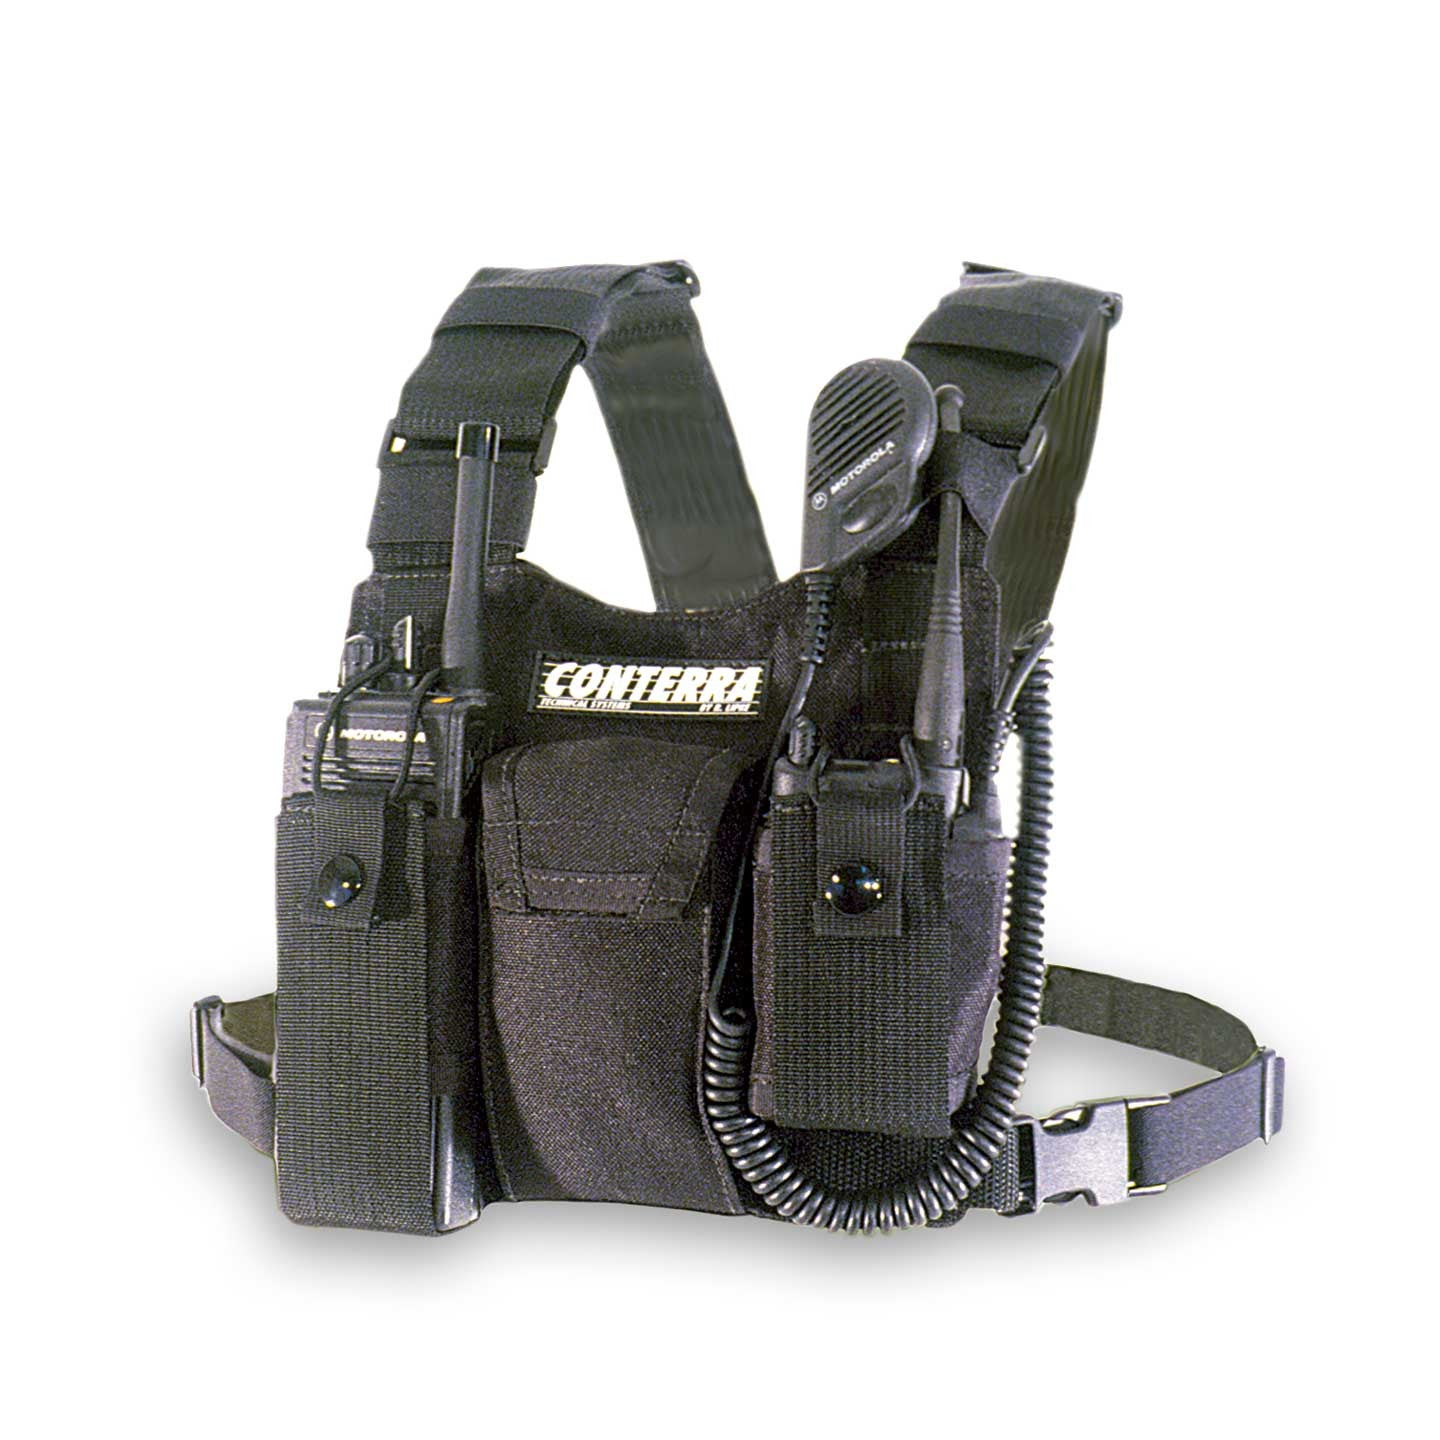 doubleradioharness?v=1424473790 double adjusta pro radio chest harness conterra inc radio harness at crackthecode.co